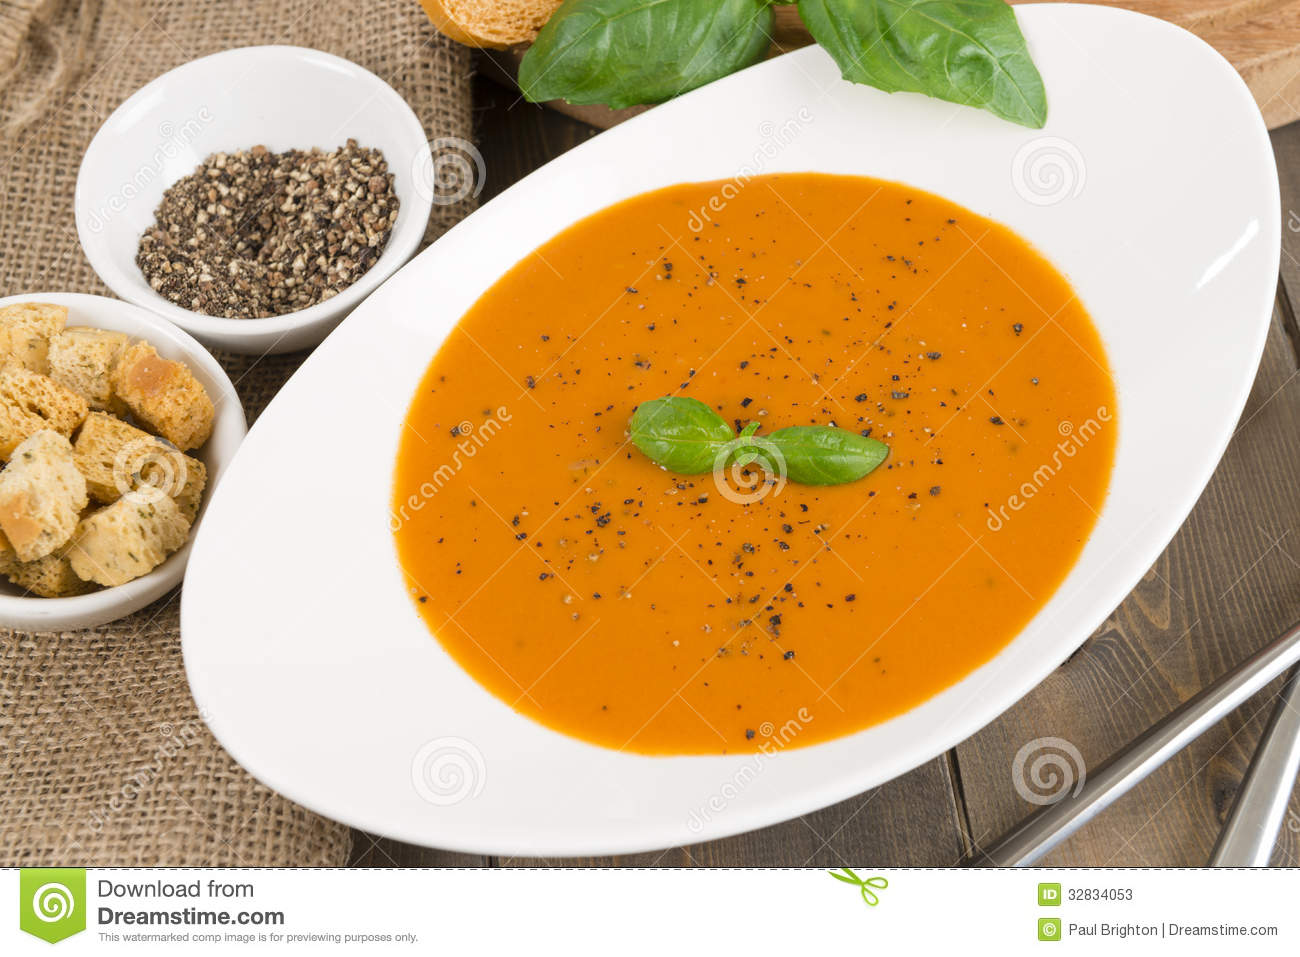 Cream Of Tomato Soup Stock Photos - Image: 32834053 Cream Of Tomato Soup With Garnish